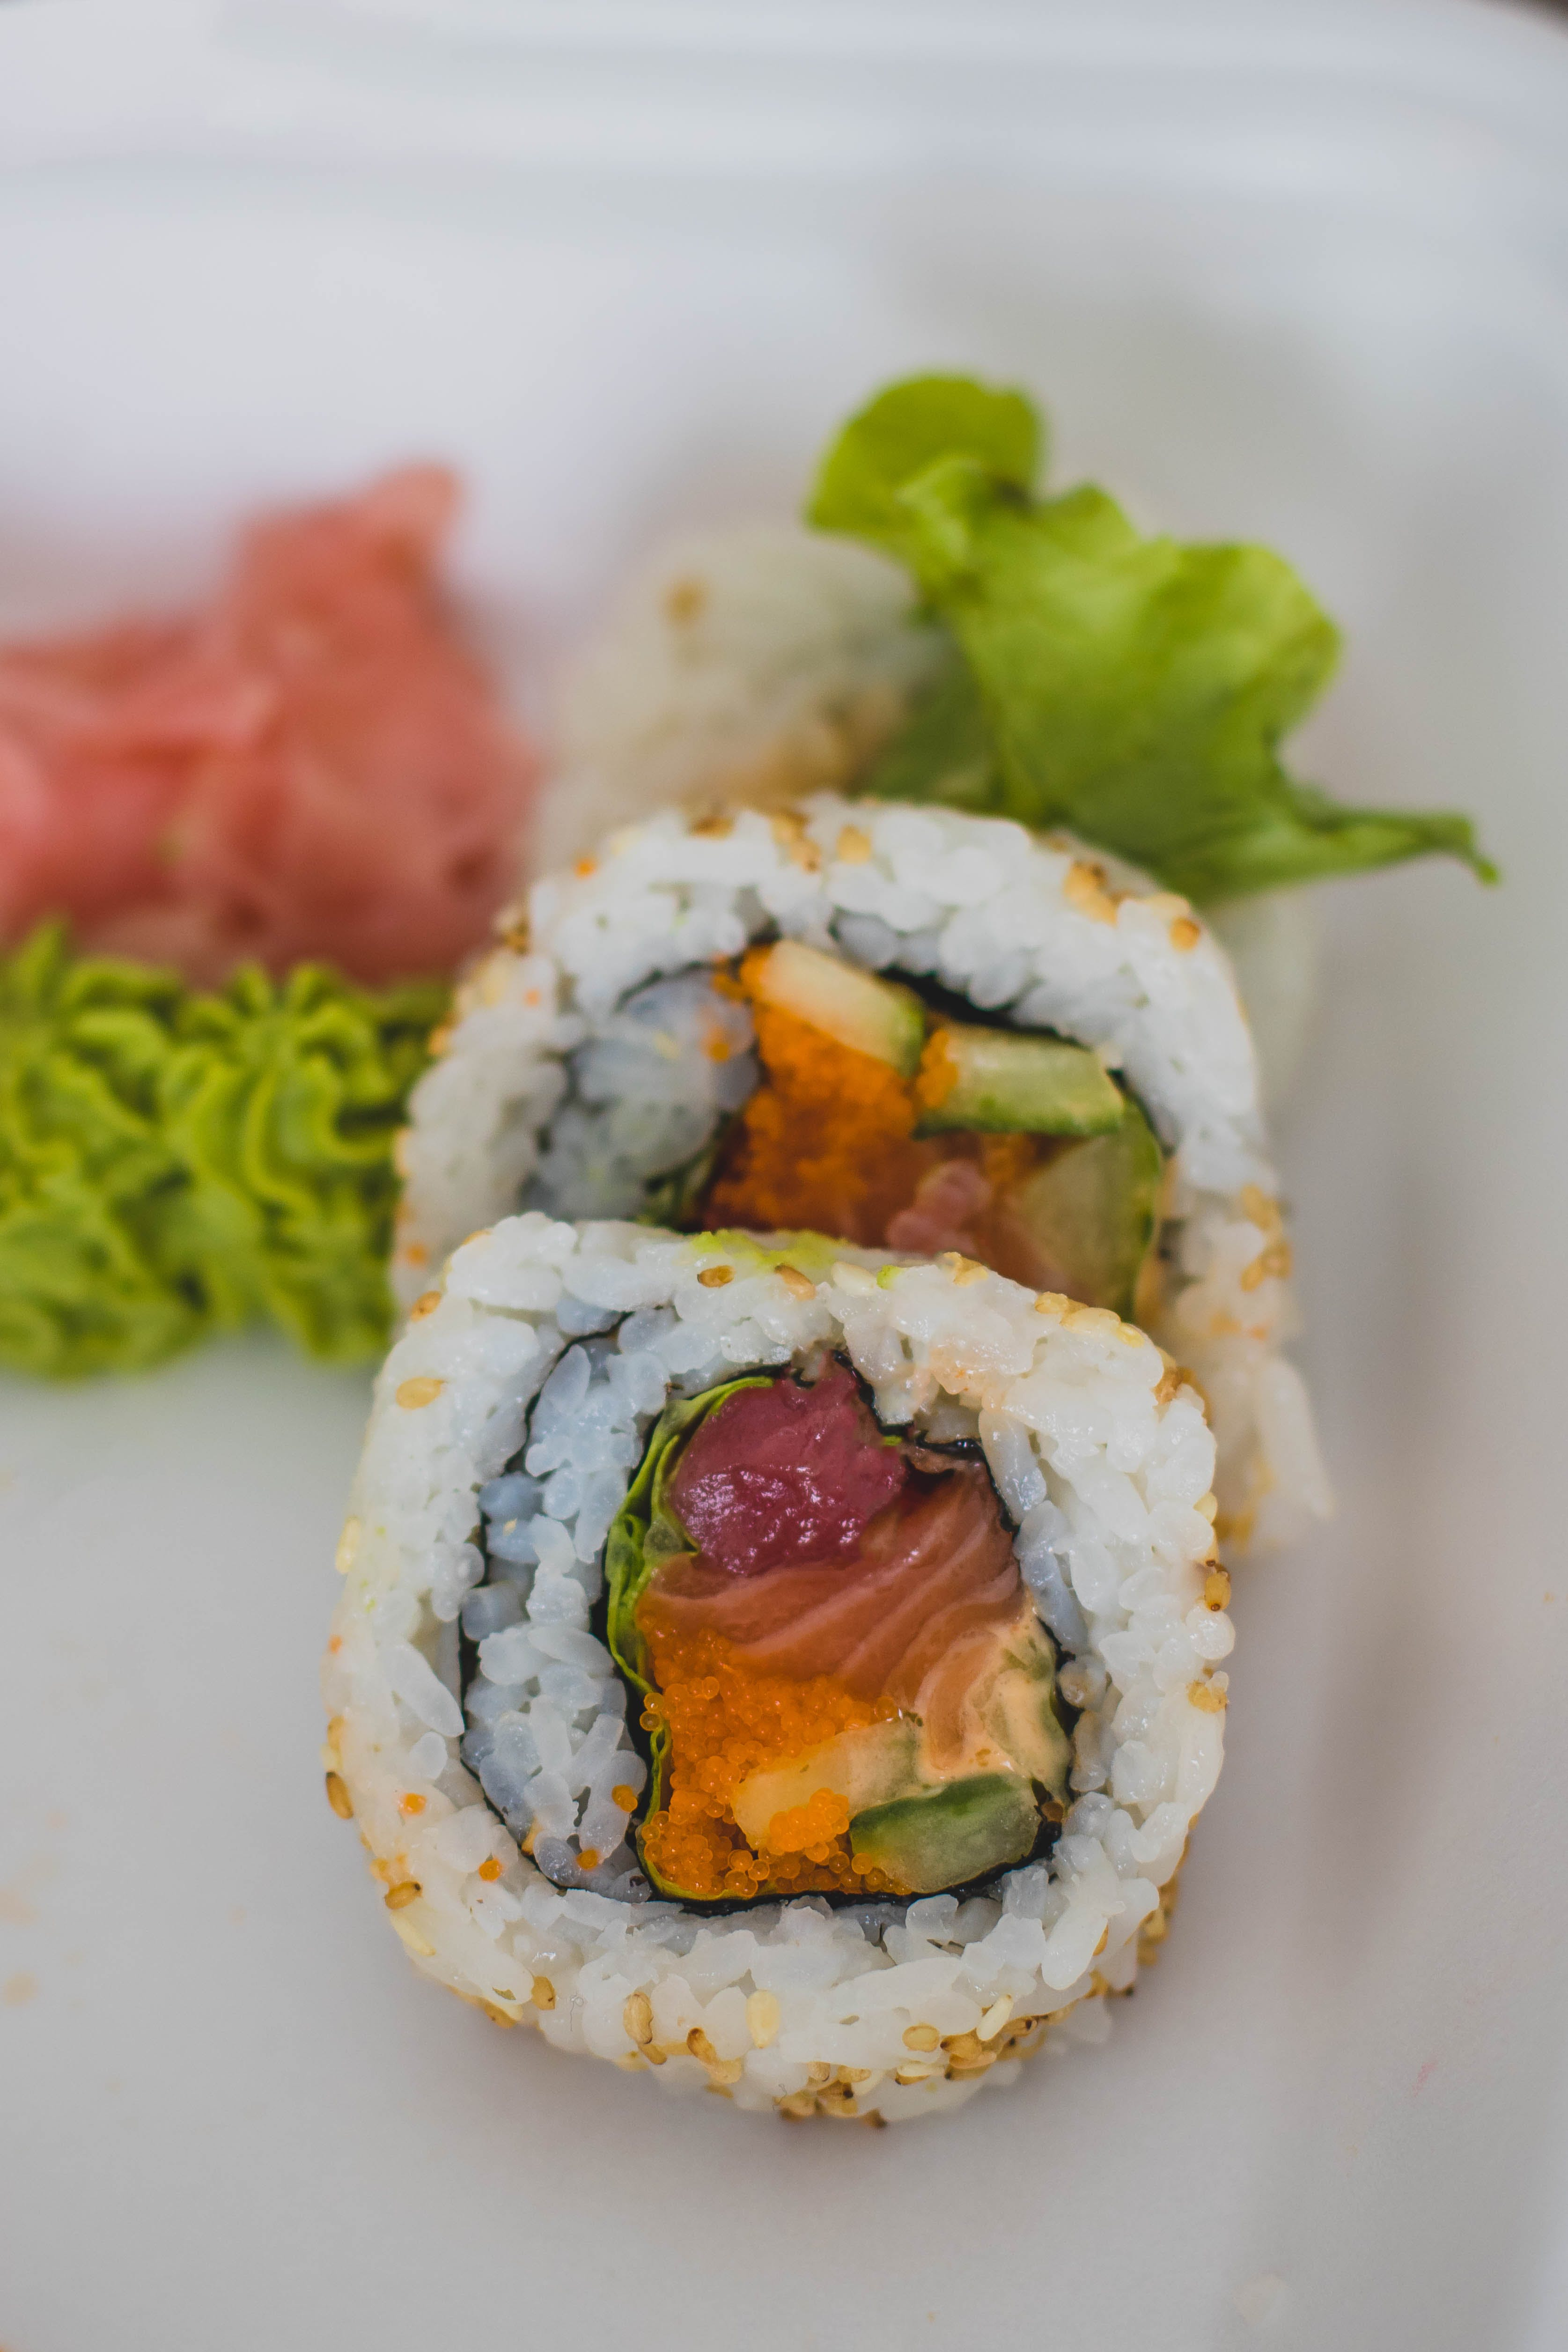 Rolled Rice With Vegetables